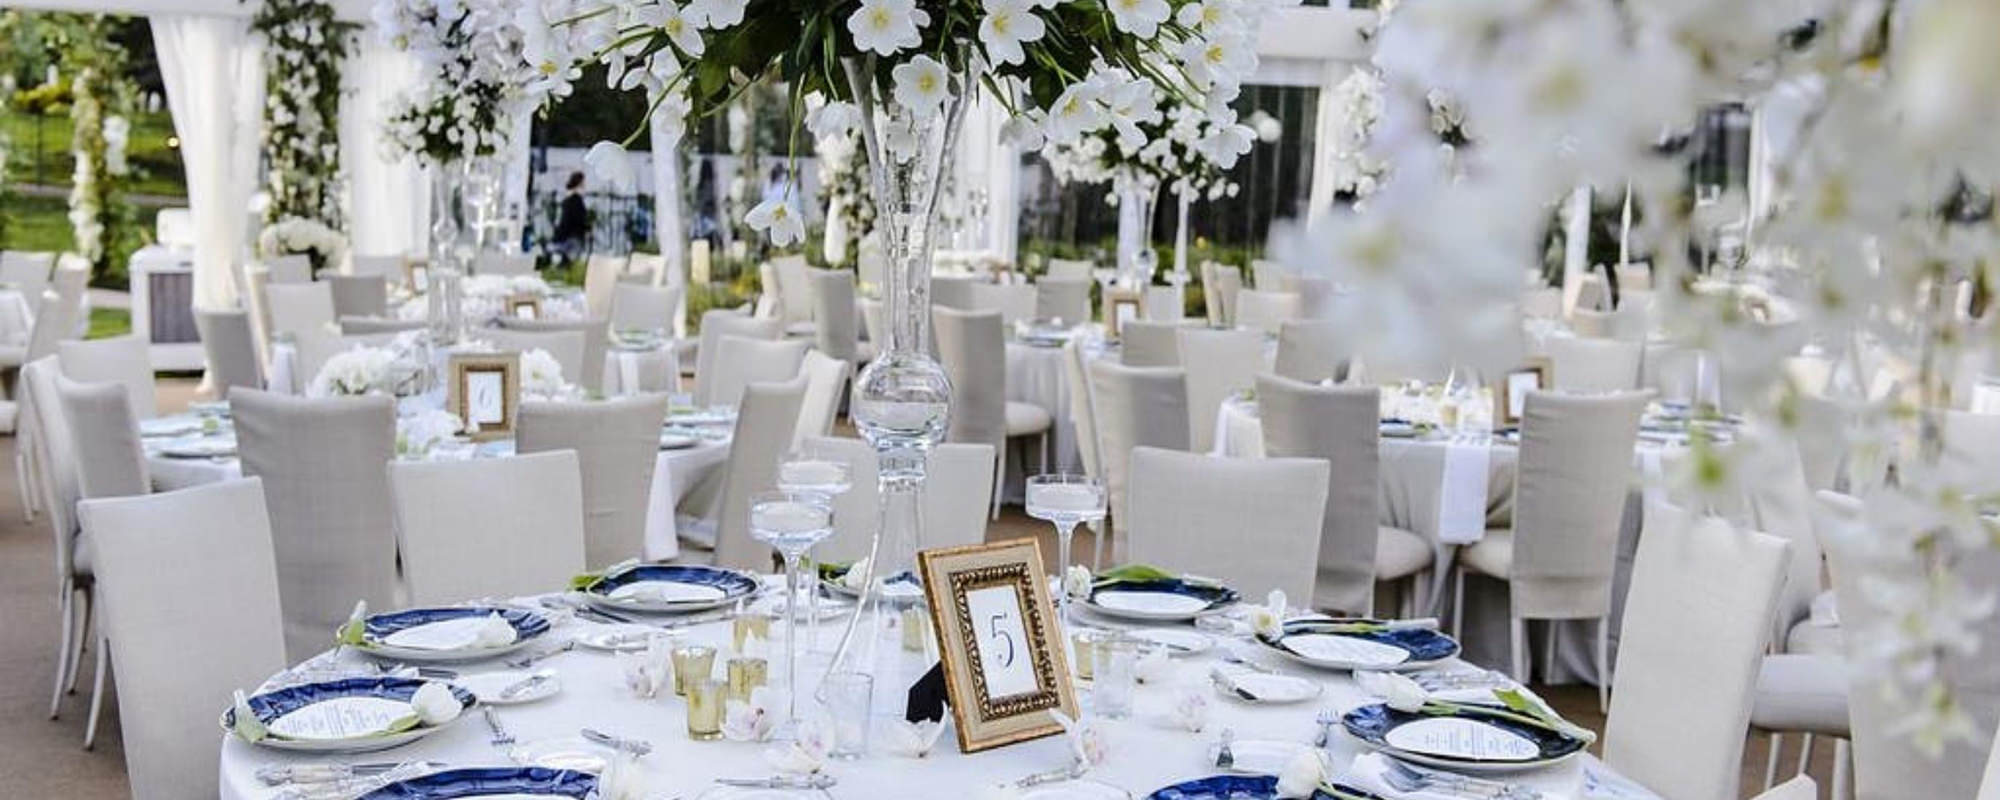 10 things to consider when planning your marquee wedding by Kimberley Rose Designs